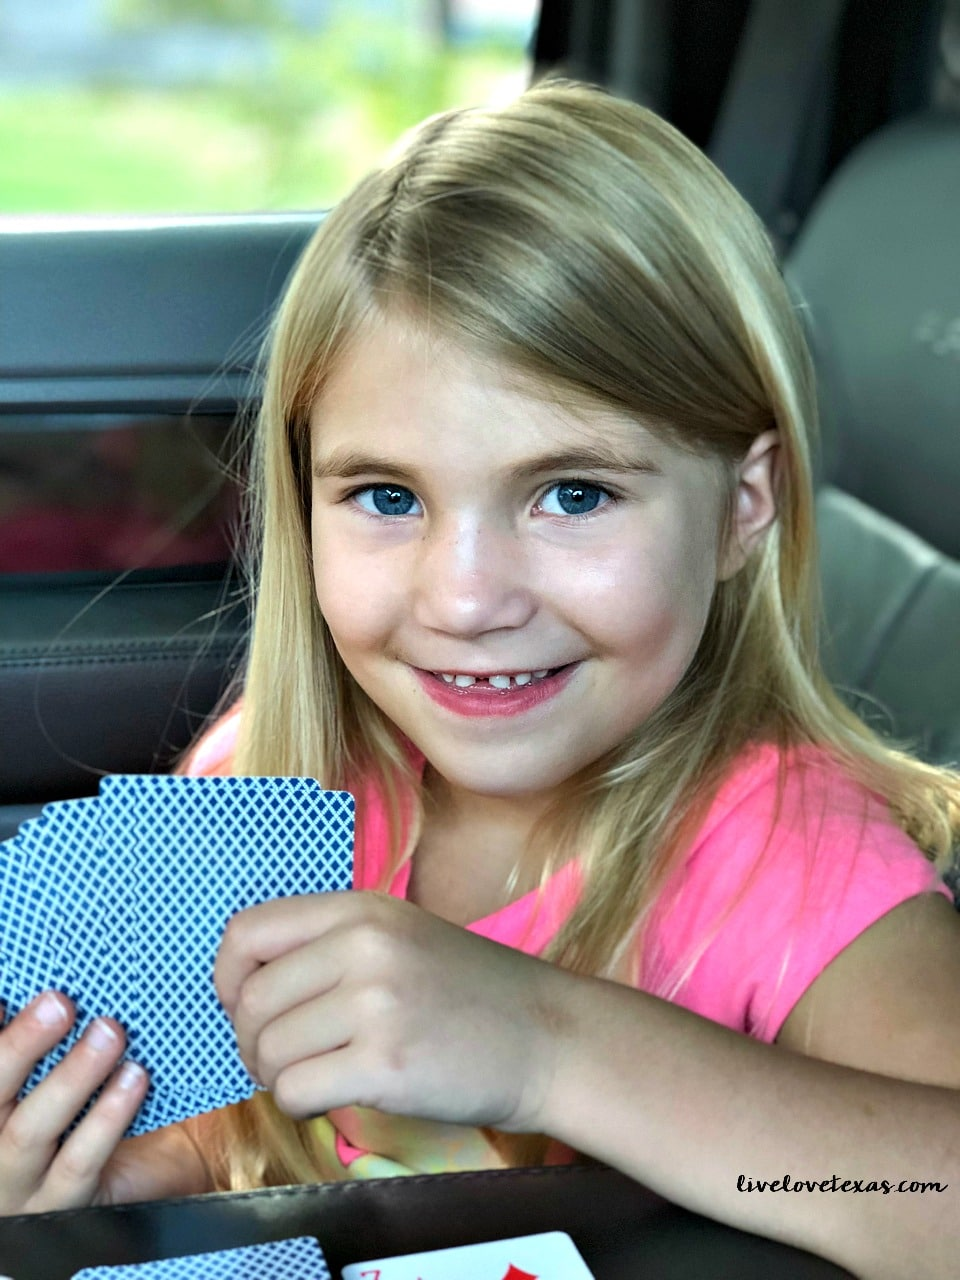 Do you ever feel like your life is spent in the car? There's hope! Check out these 5 Tips for the On the Go Mom to help you be prepared and stay sane.